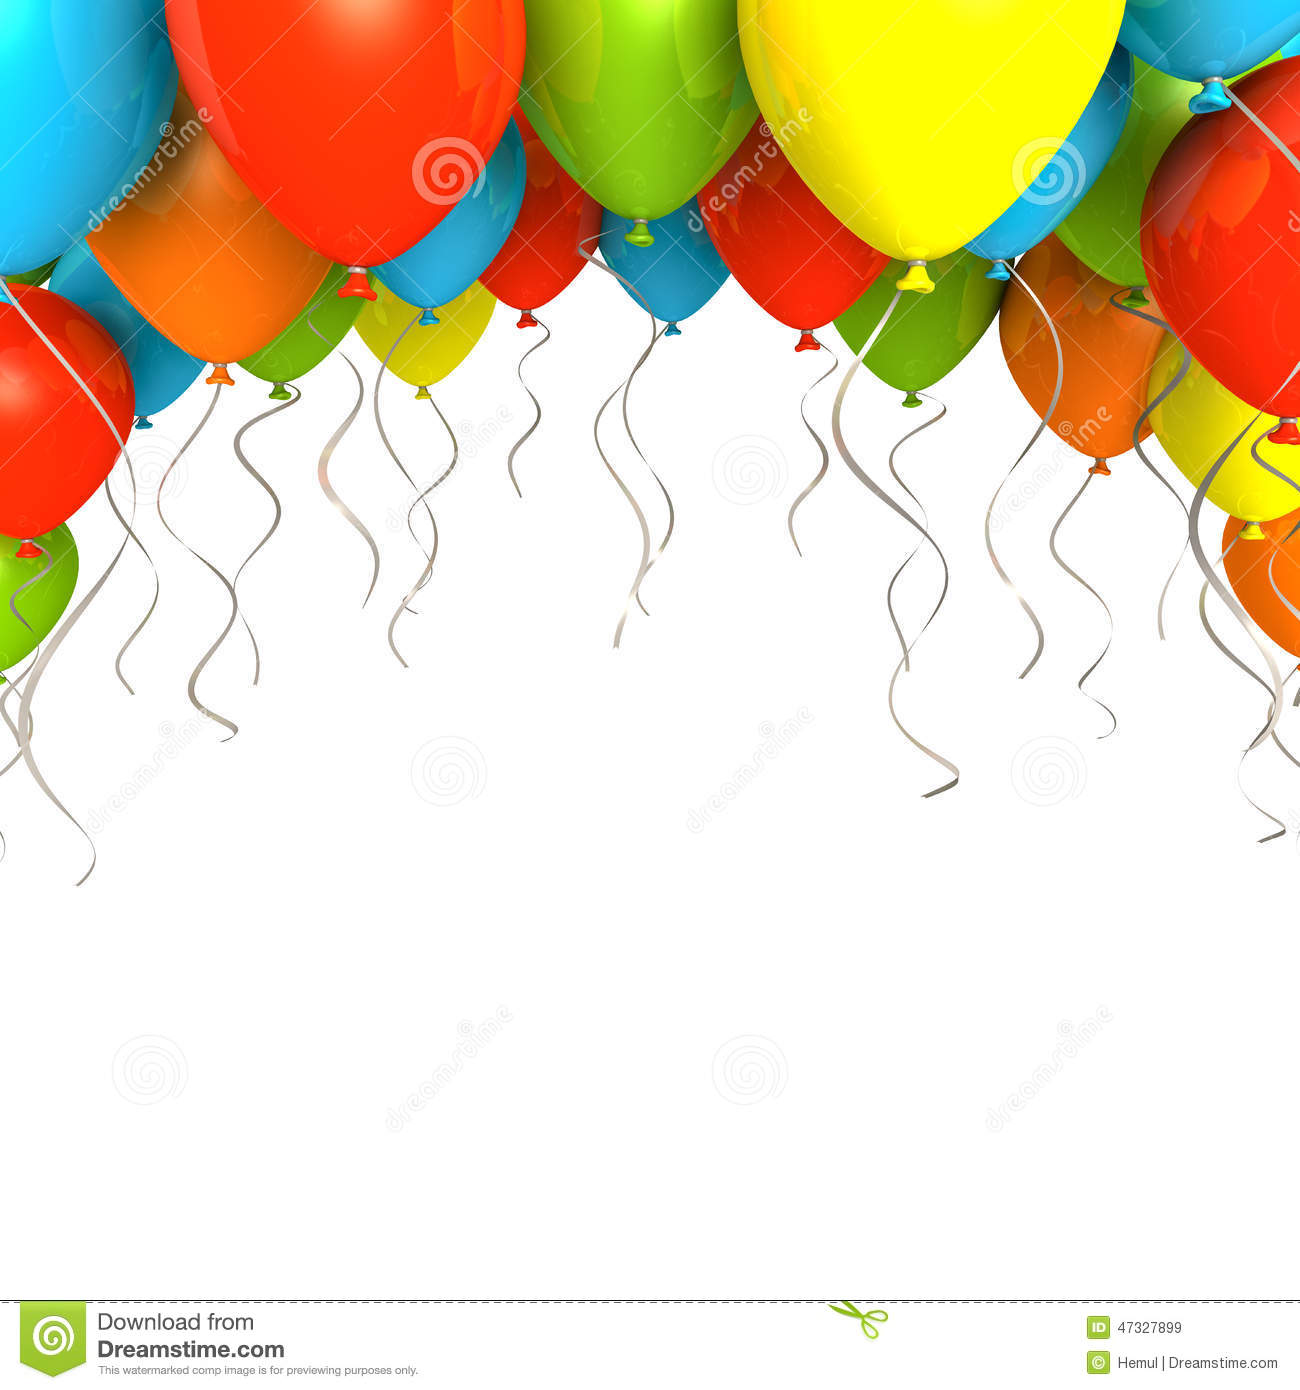 Party Ballons On White Background Stock Illustration - Image: 47327899